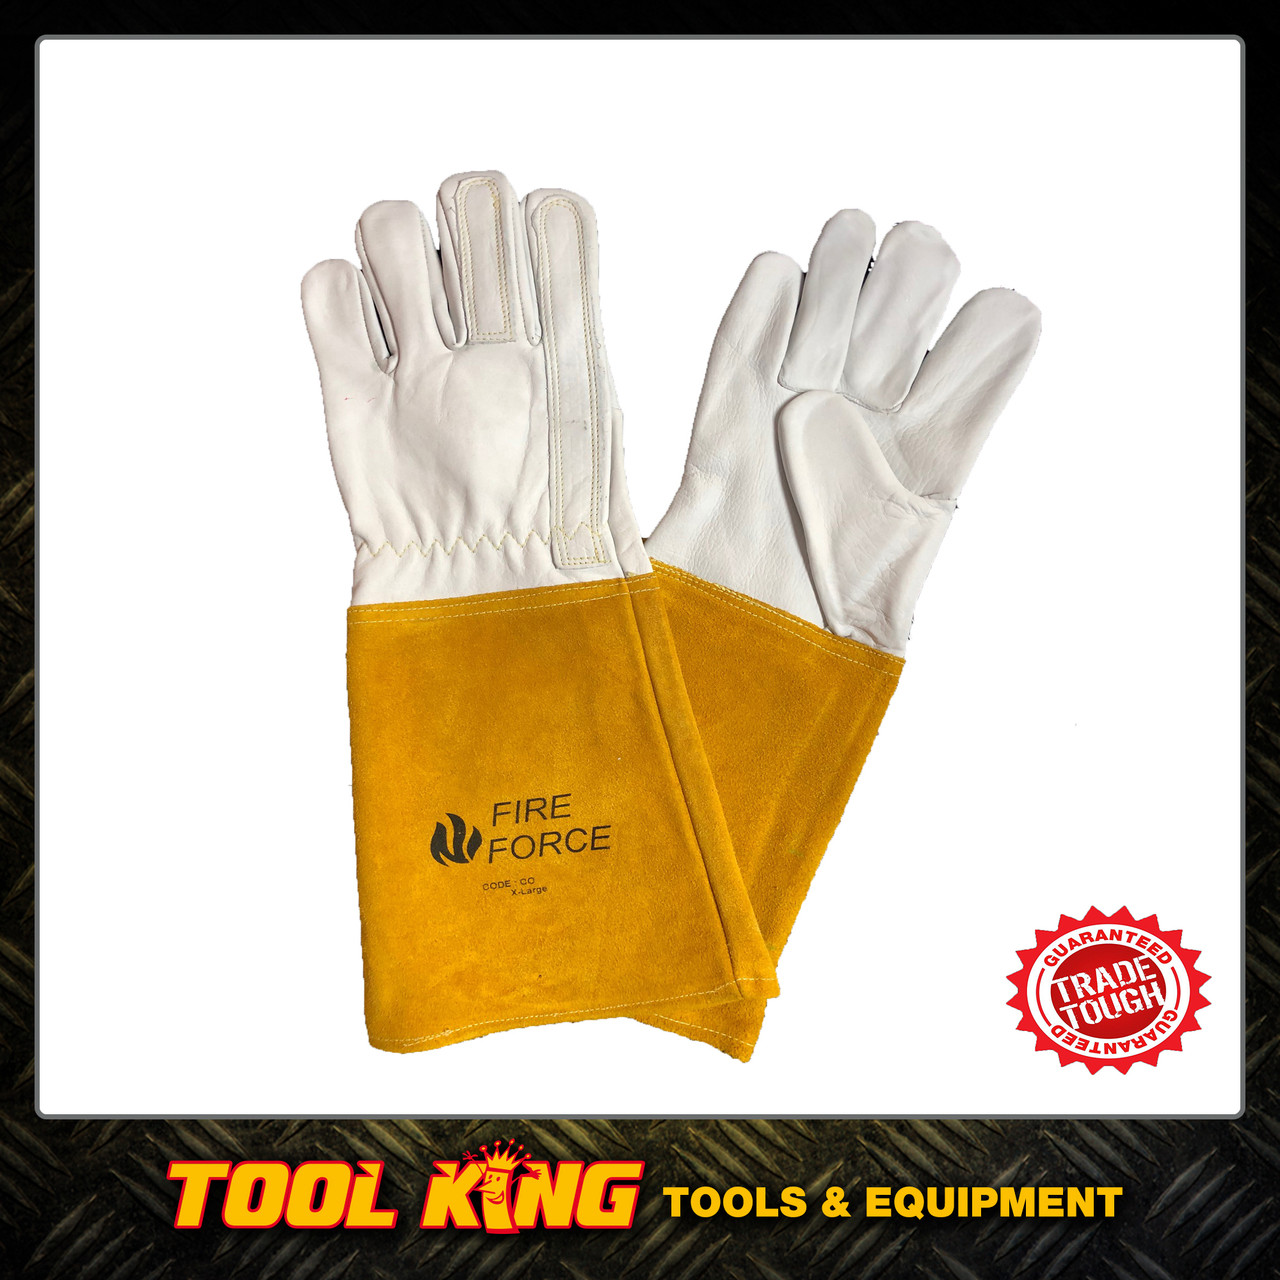 TIG Welding gloves  Extra protection TOP QUALITY Fireforce